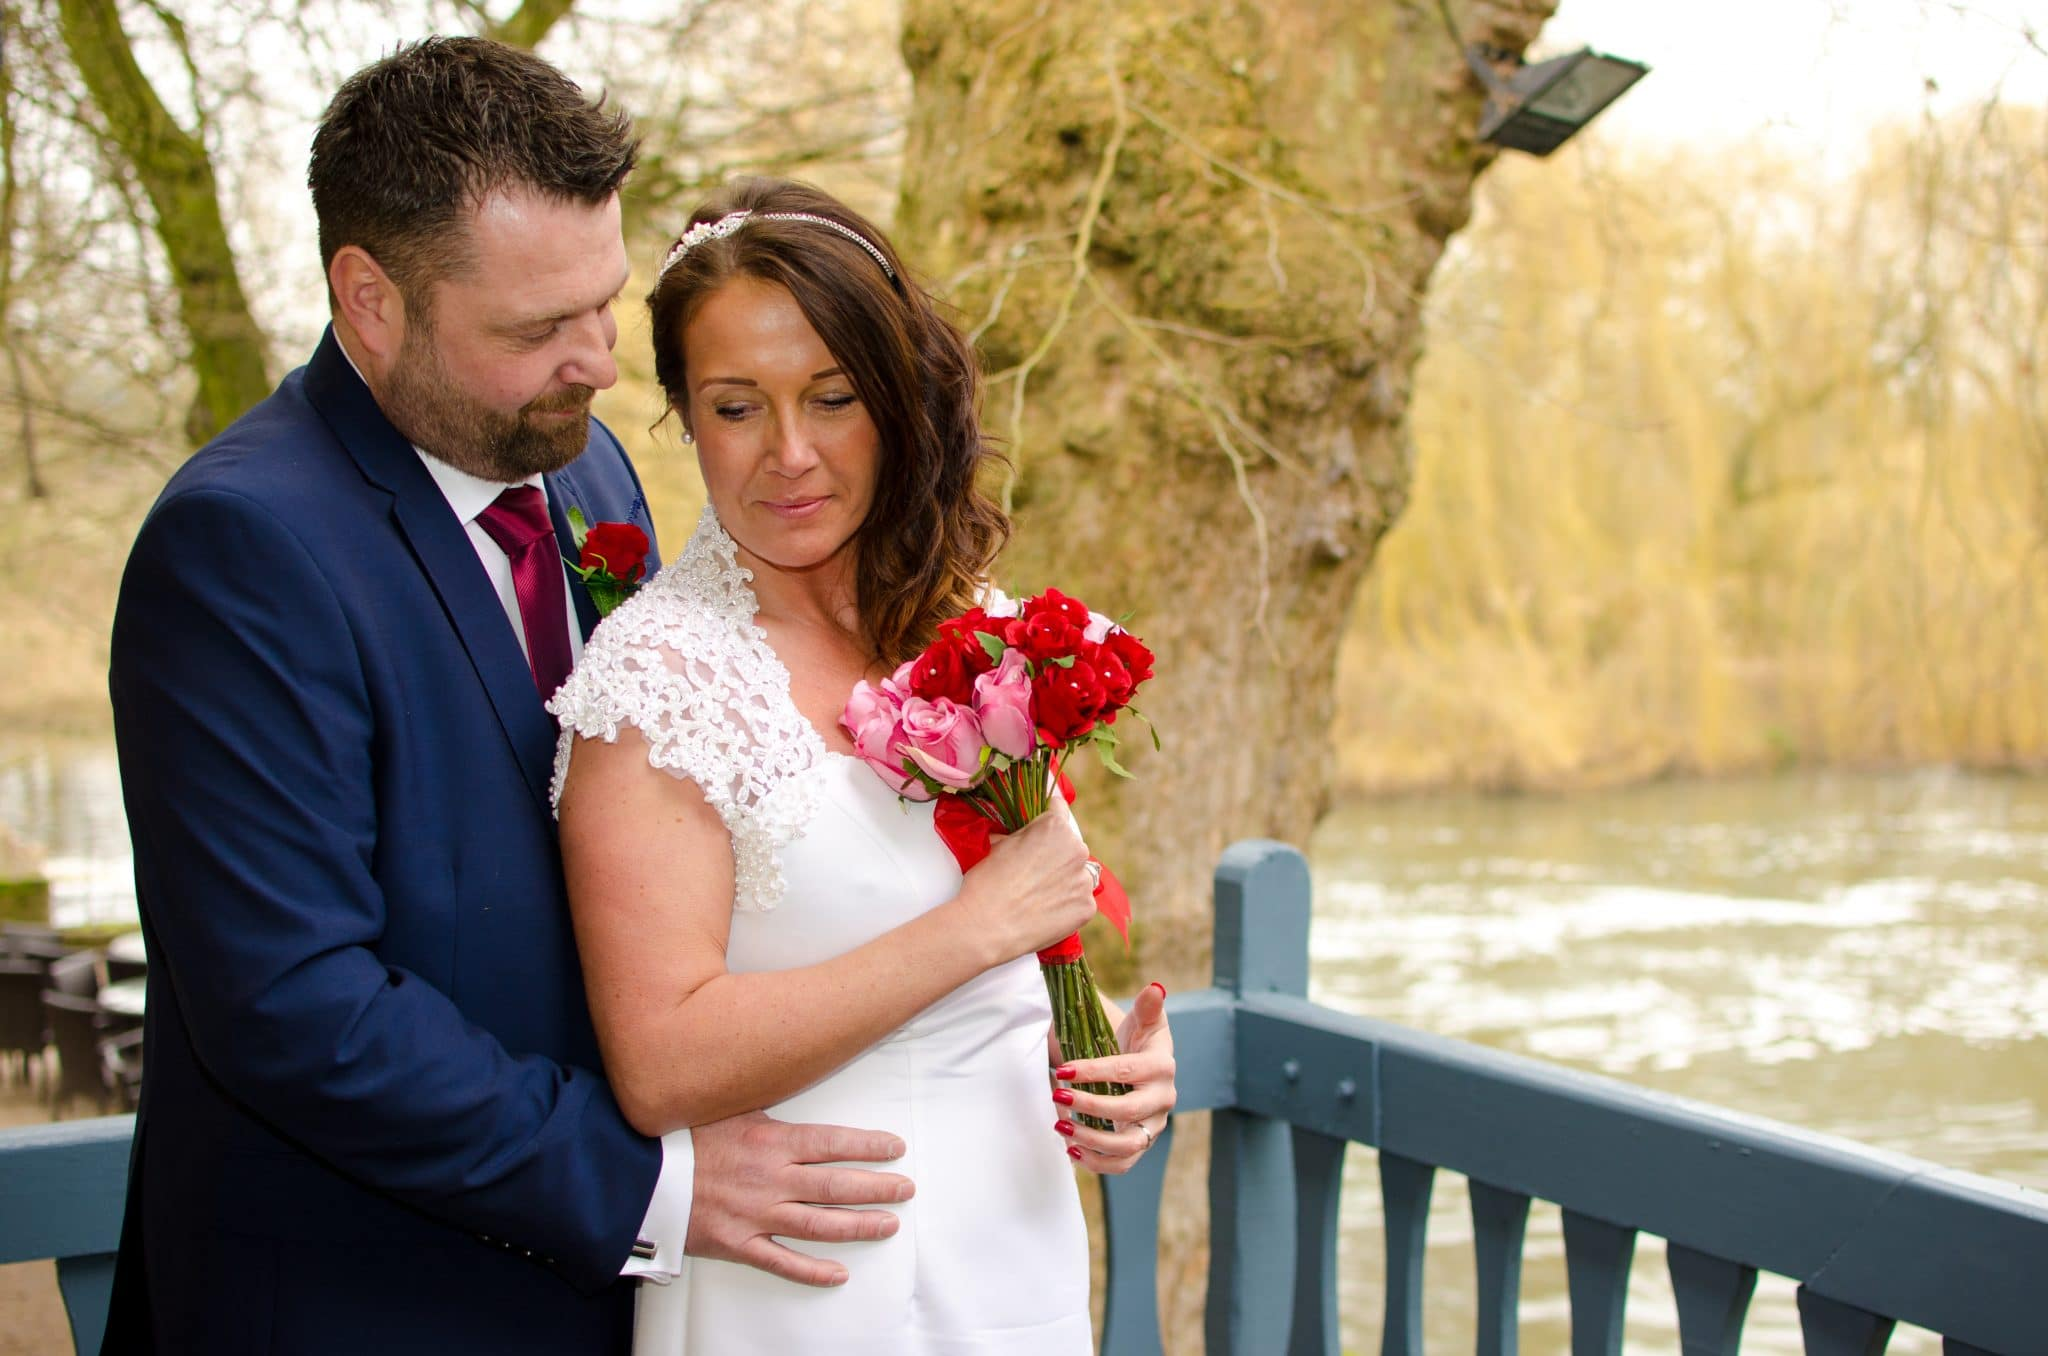 Tommy James Photography | Wedding Photography Image 5